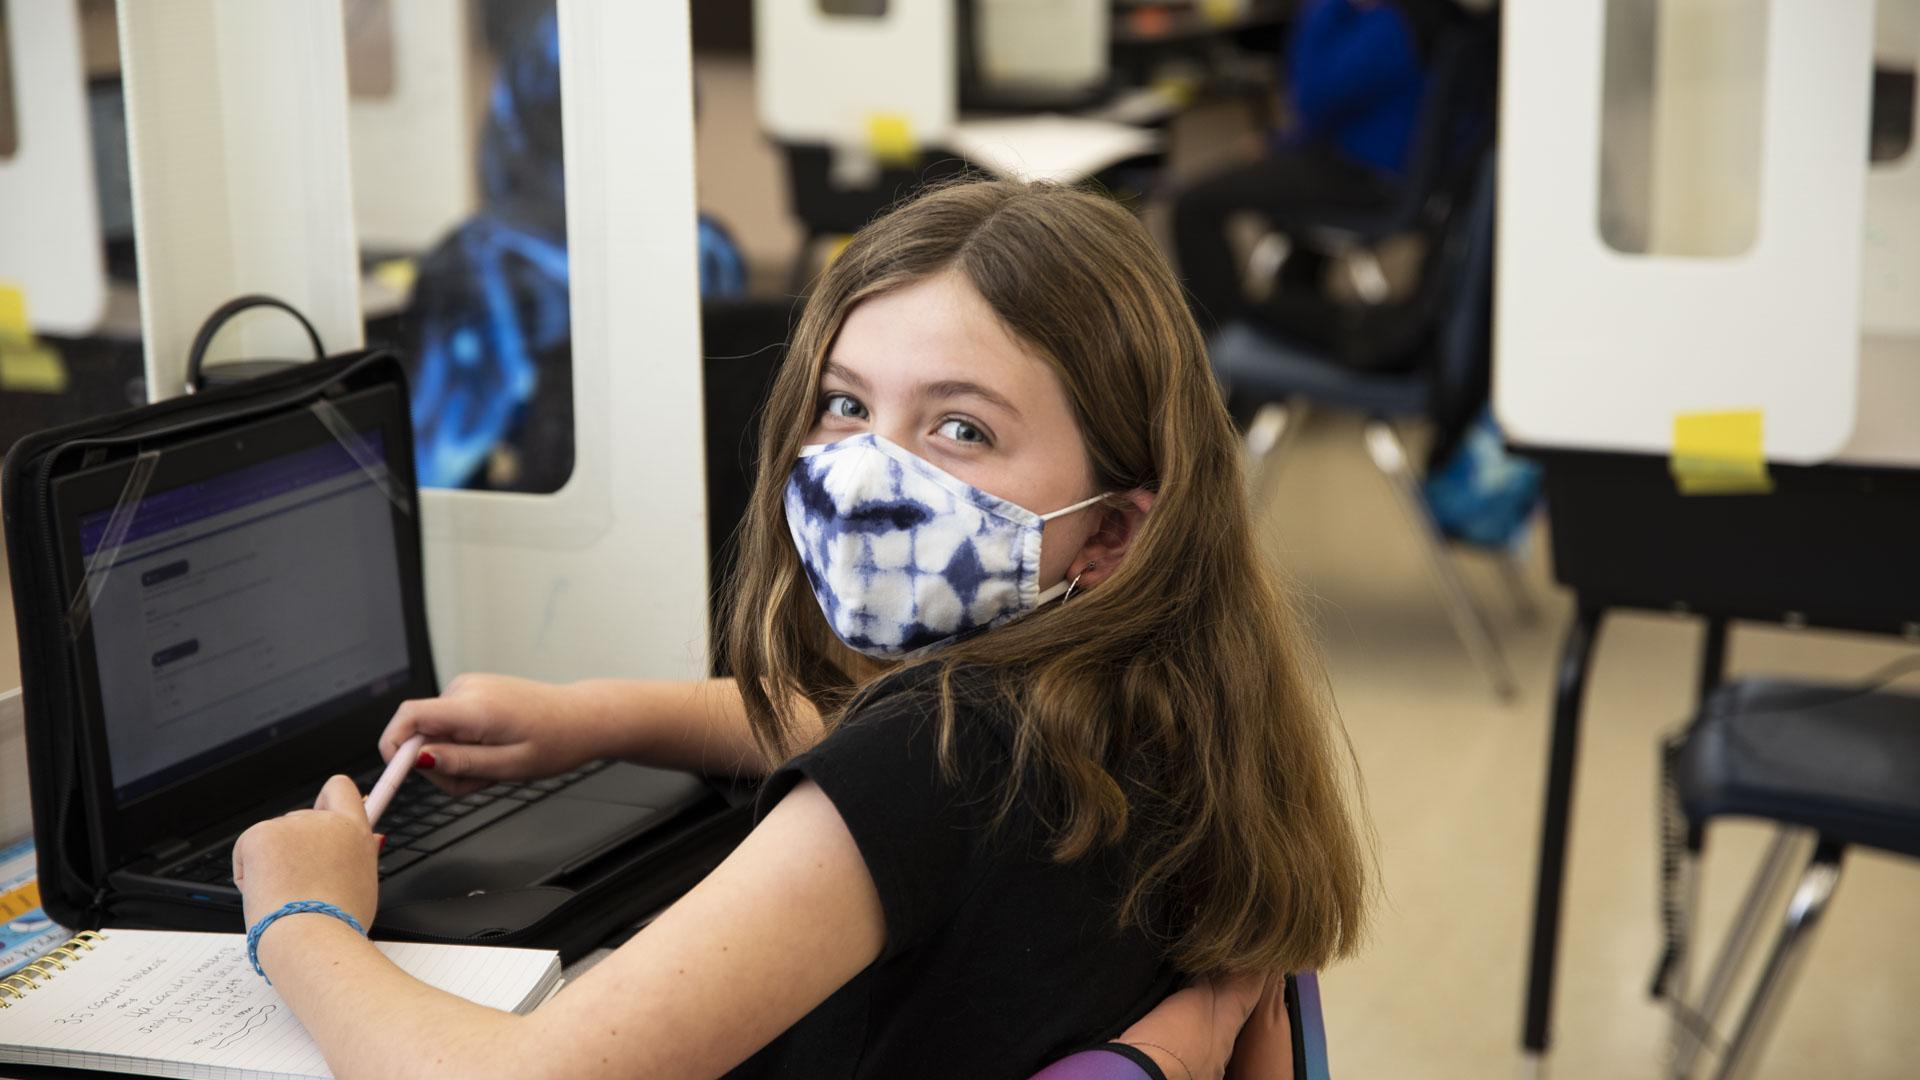 Student working on Chromebook in classroom